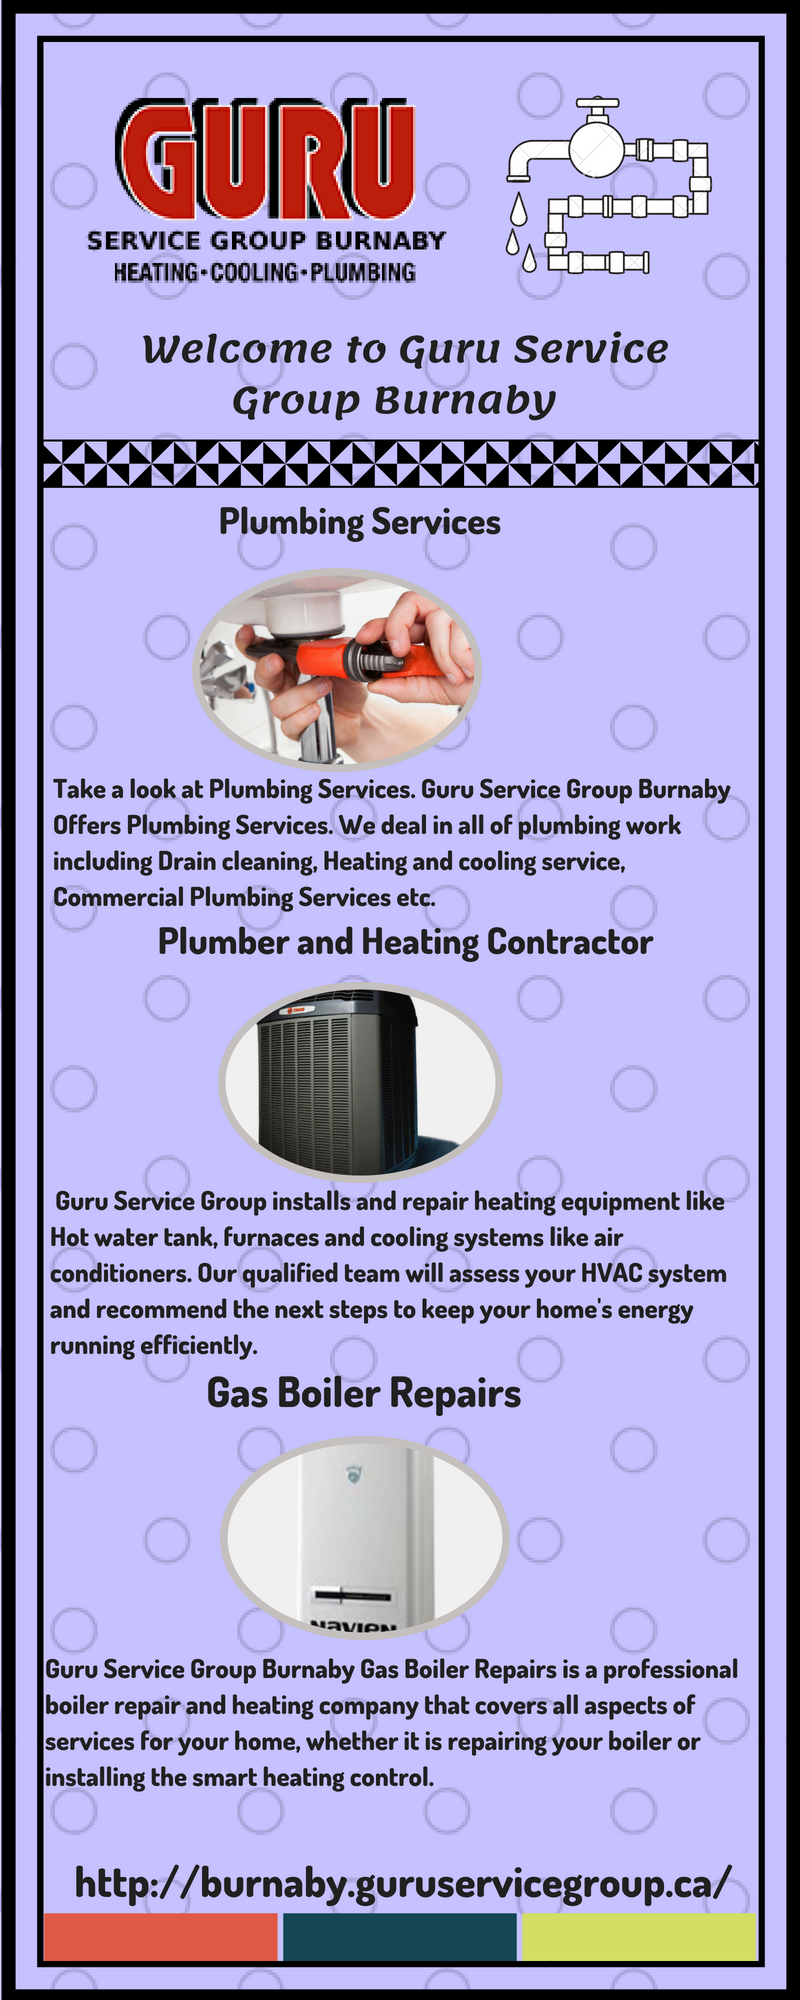 Guru Service Group Burnaby Offers Heating Cooling And Plumbing